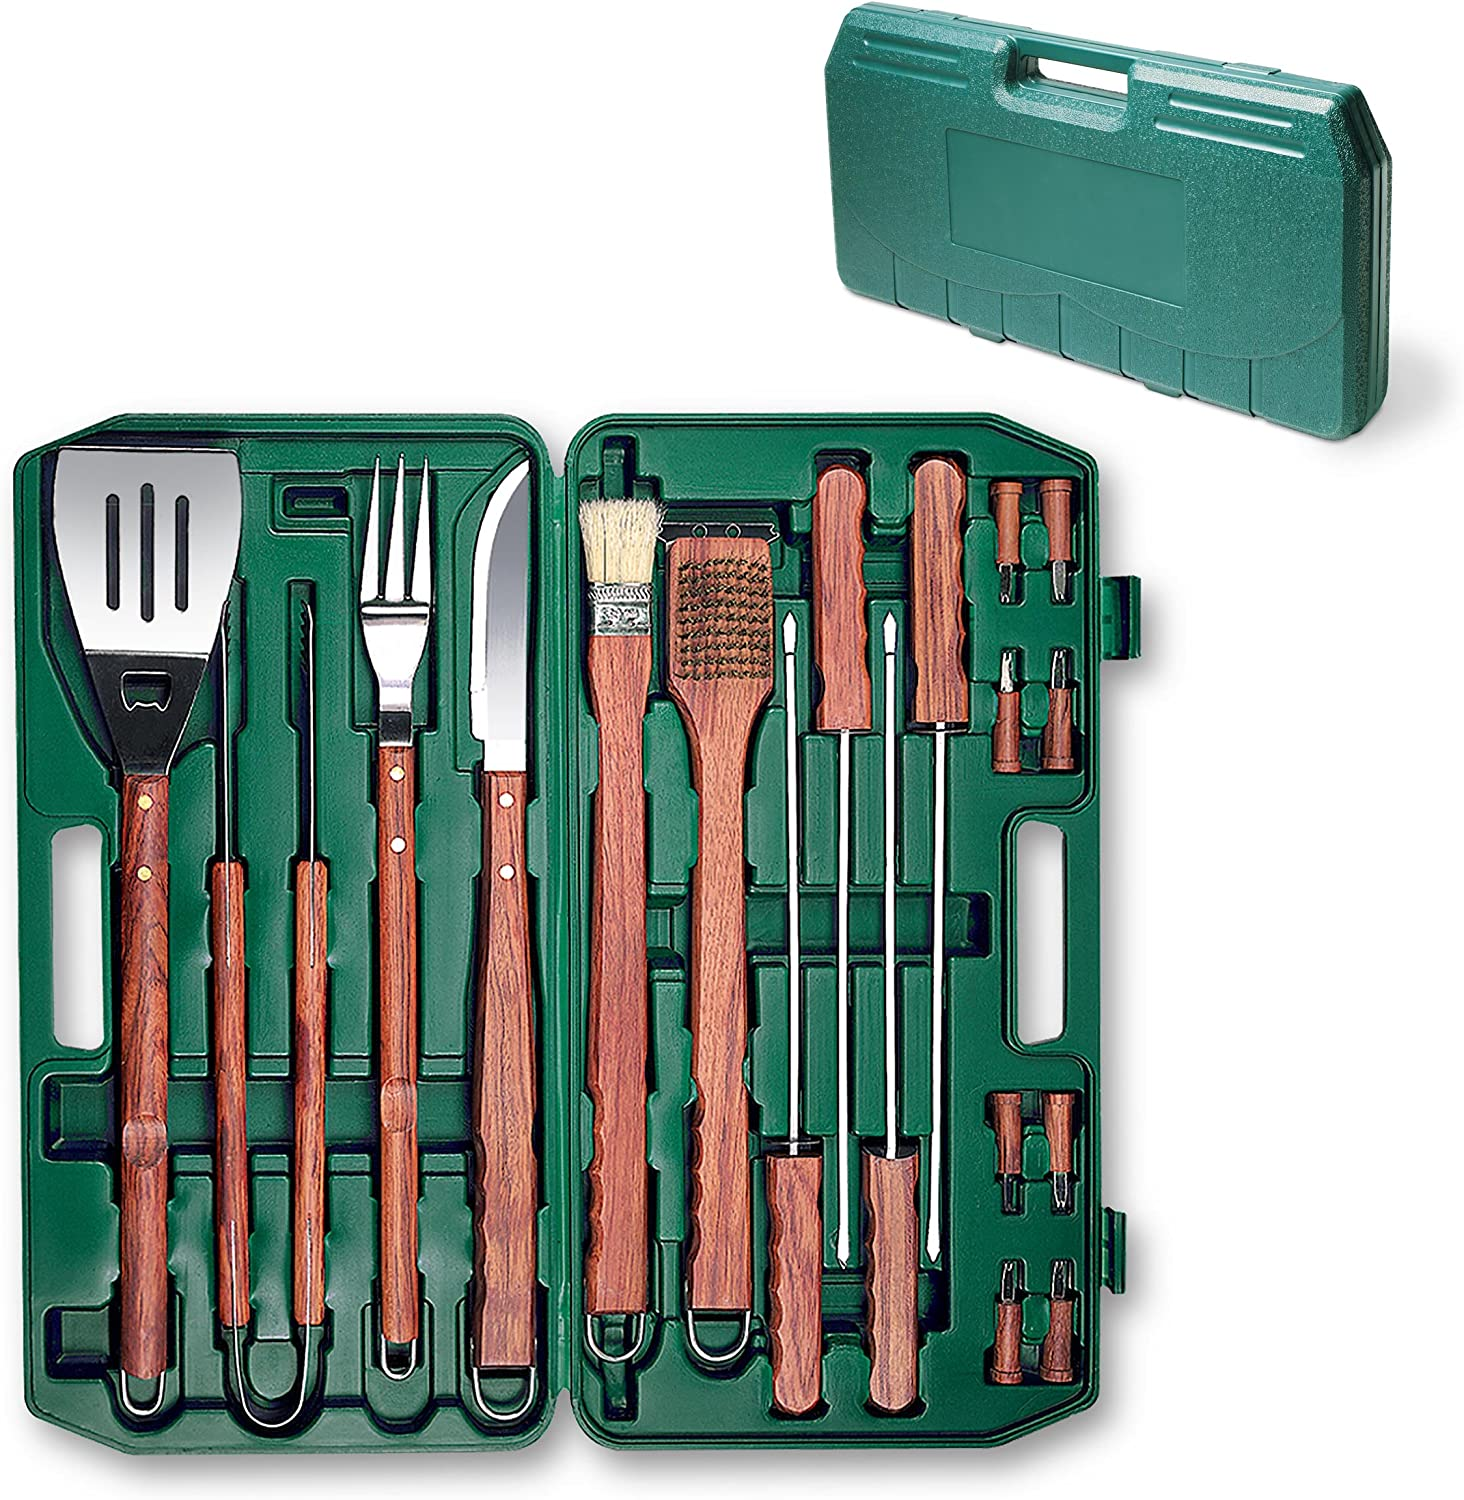 ONIVA – a Picnic Time Brand 18-Piece Deluxe BBQ Tool Set in Carry Case